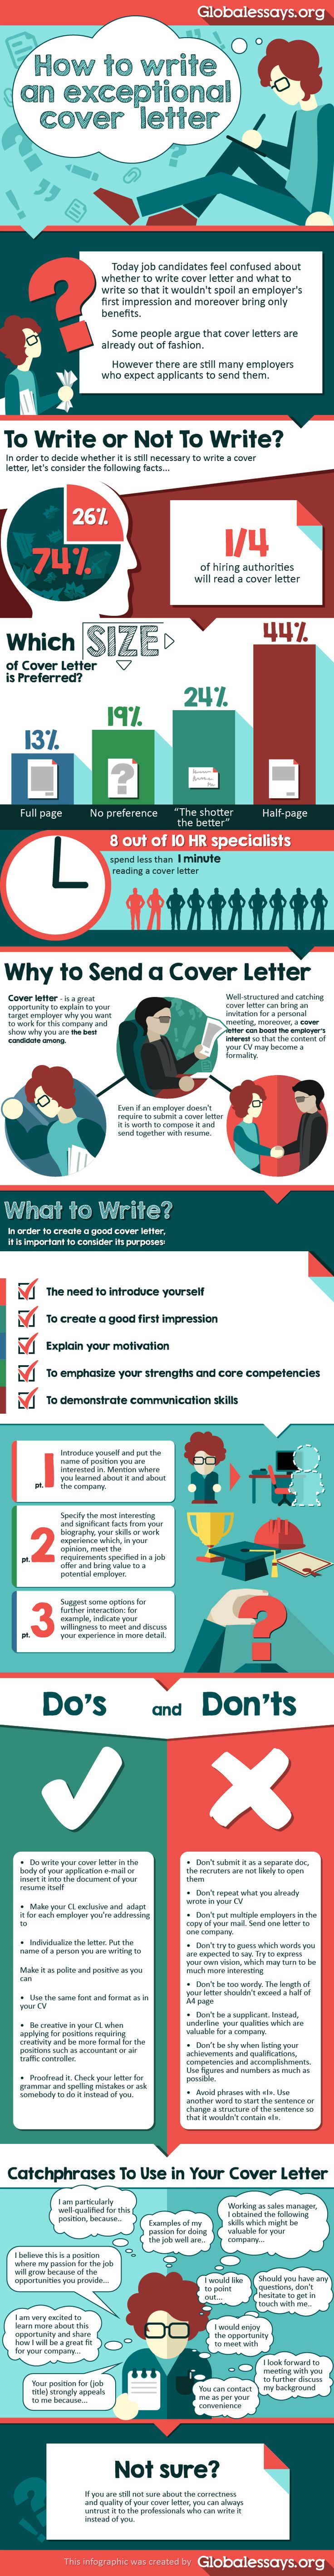 how to write an exceptional cover letter by global essays via tipsographic - What To Write In A Covering Letter